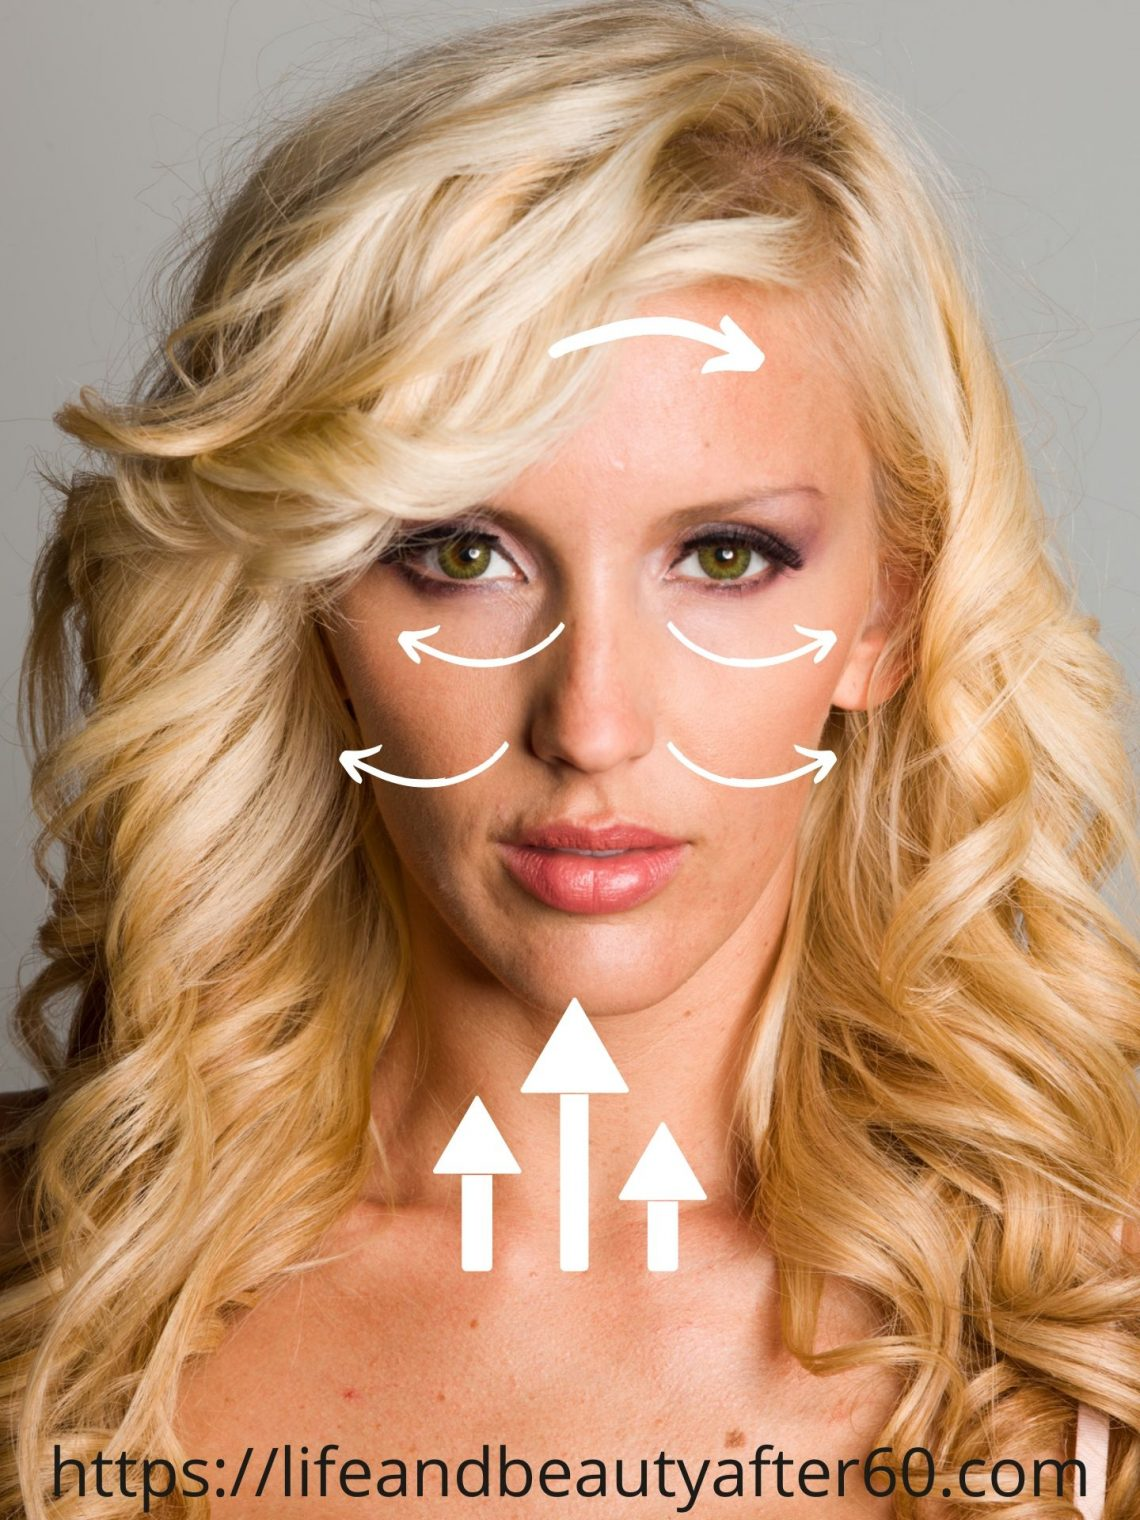 Lady with direction arrows on her face to show how to use a quartz facial roller for rejevenation.